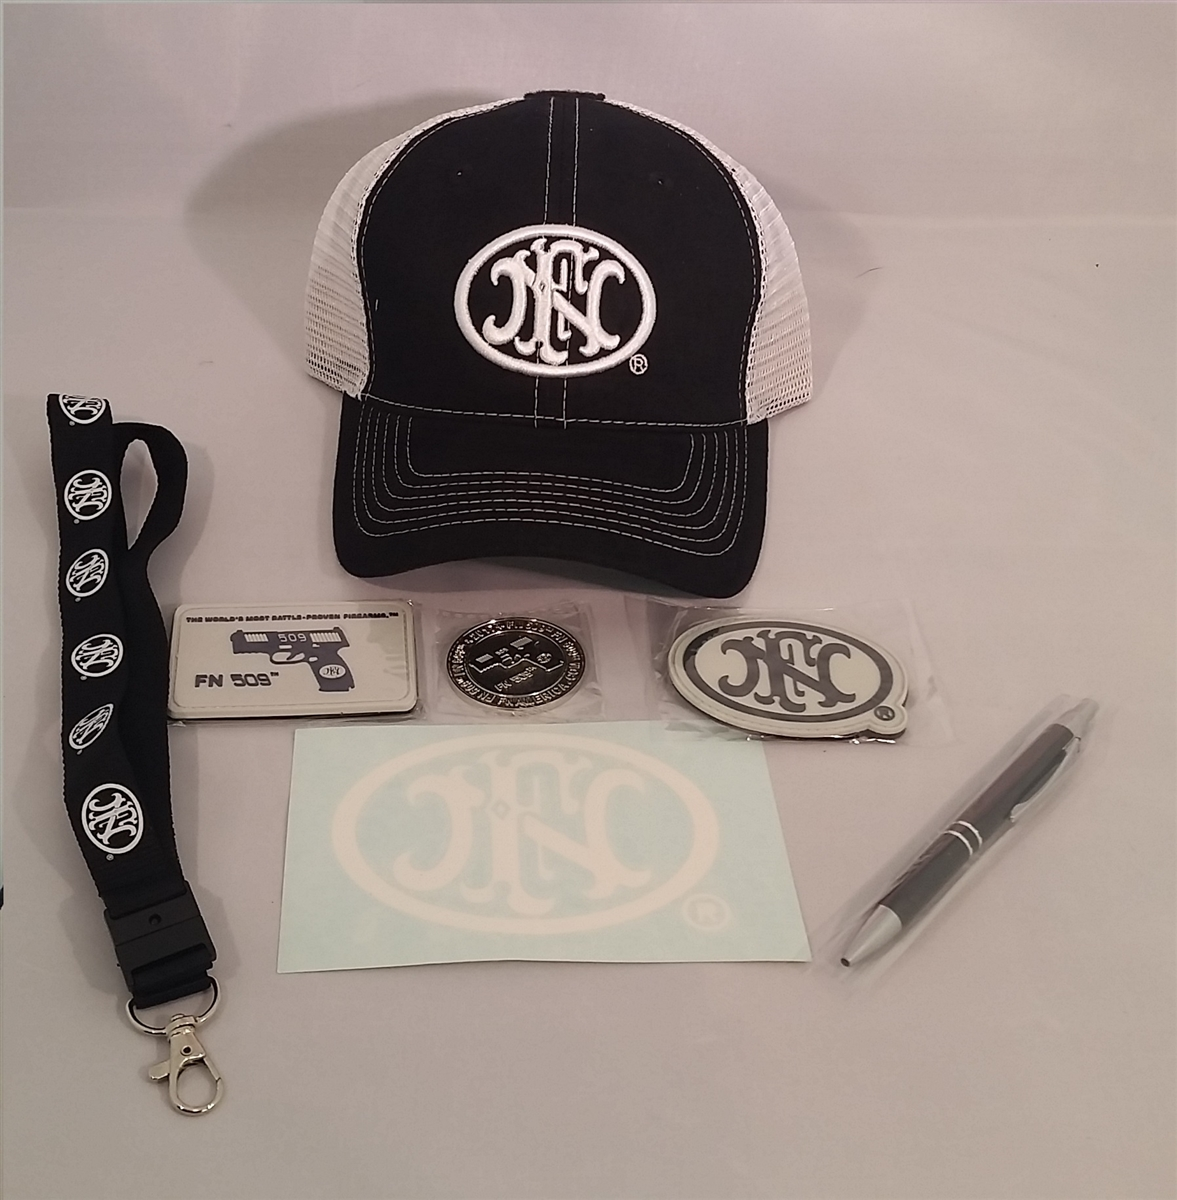 FN HERSTAL FNH STICKER, PEN, COIN, HAT, LANYARD, PATCHES, FN 509